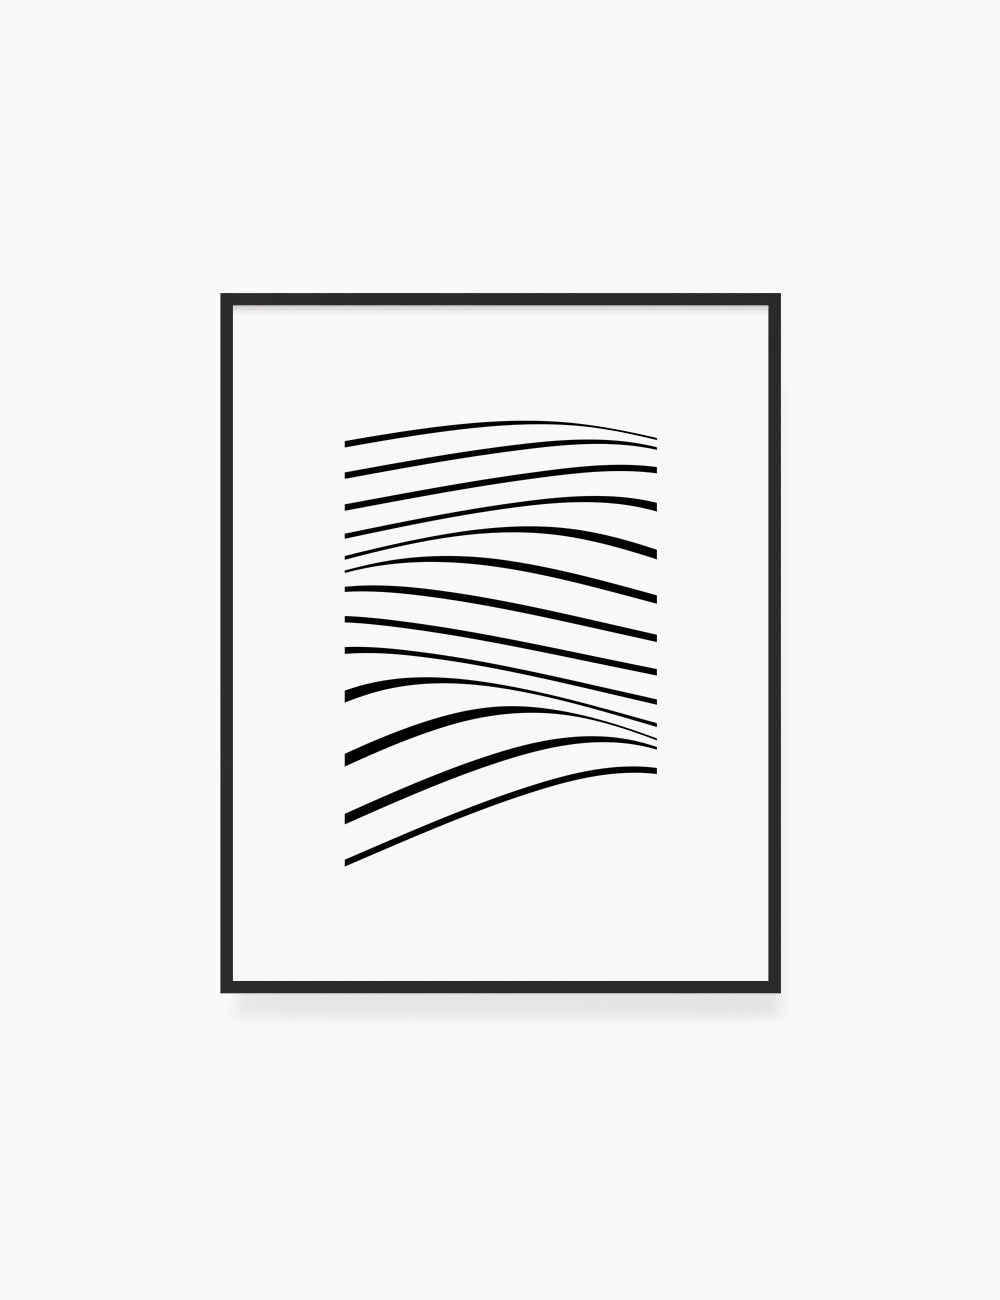 PRINTABLE WALL ART ILLUSTRATION: Minimalist Black and White Abstract Waves. Stylish. Modern. Wavy.